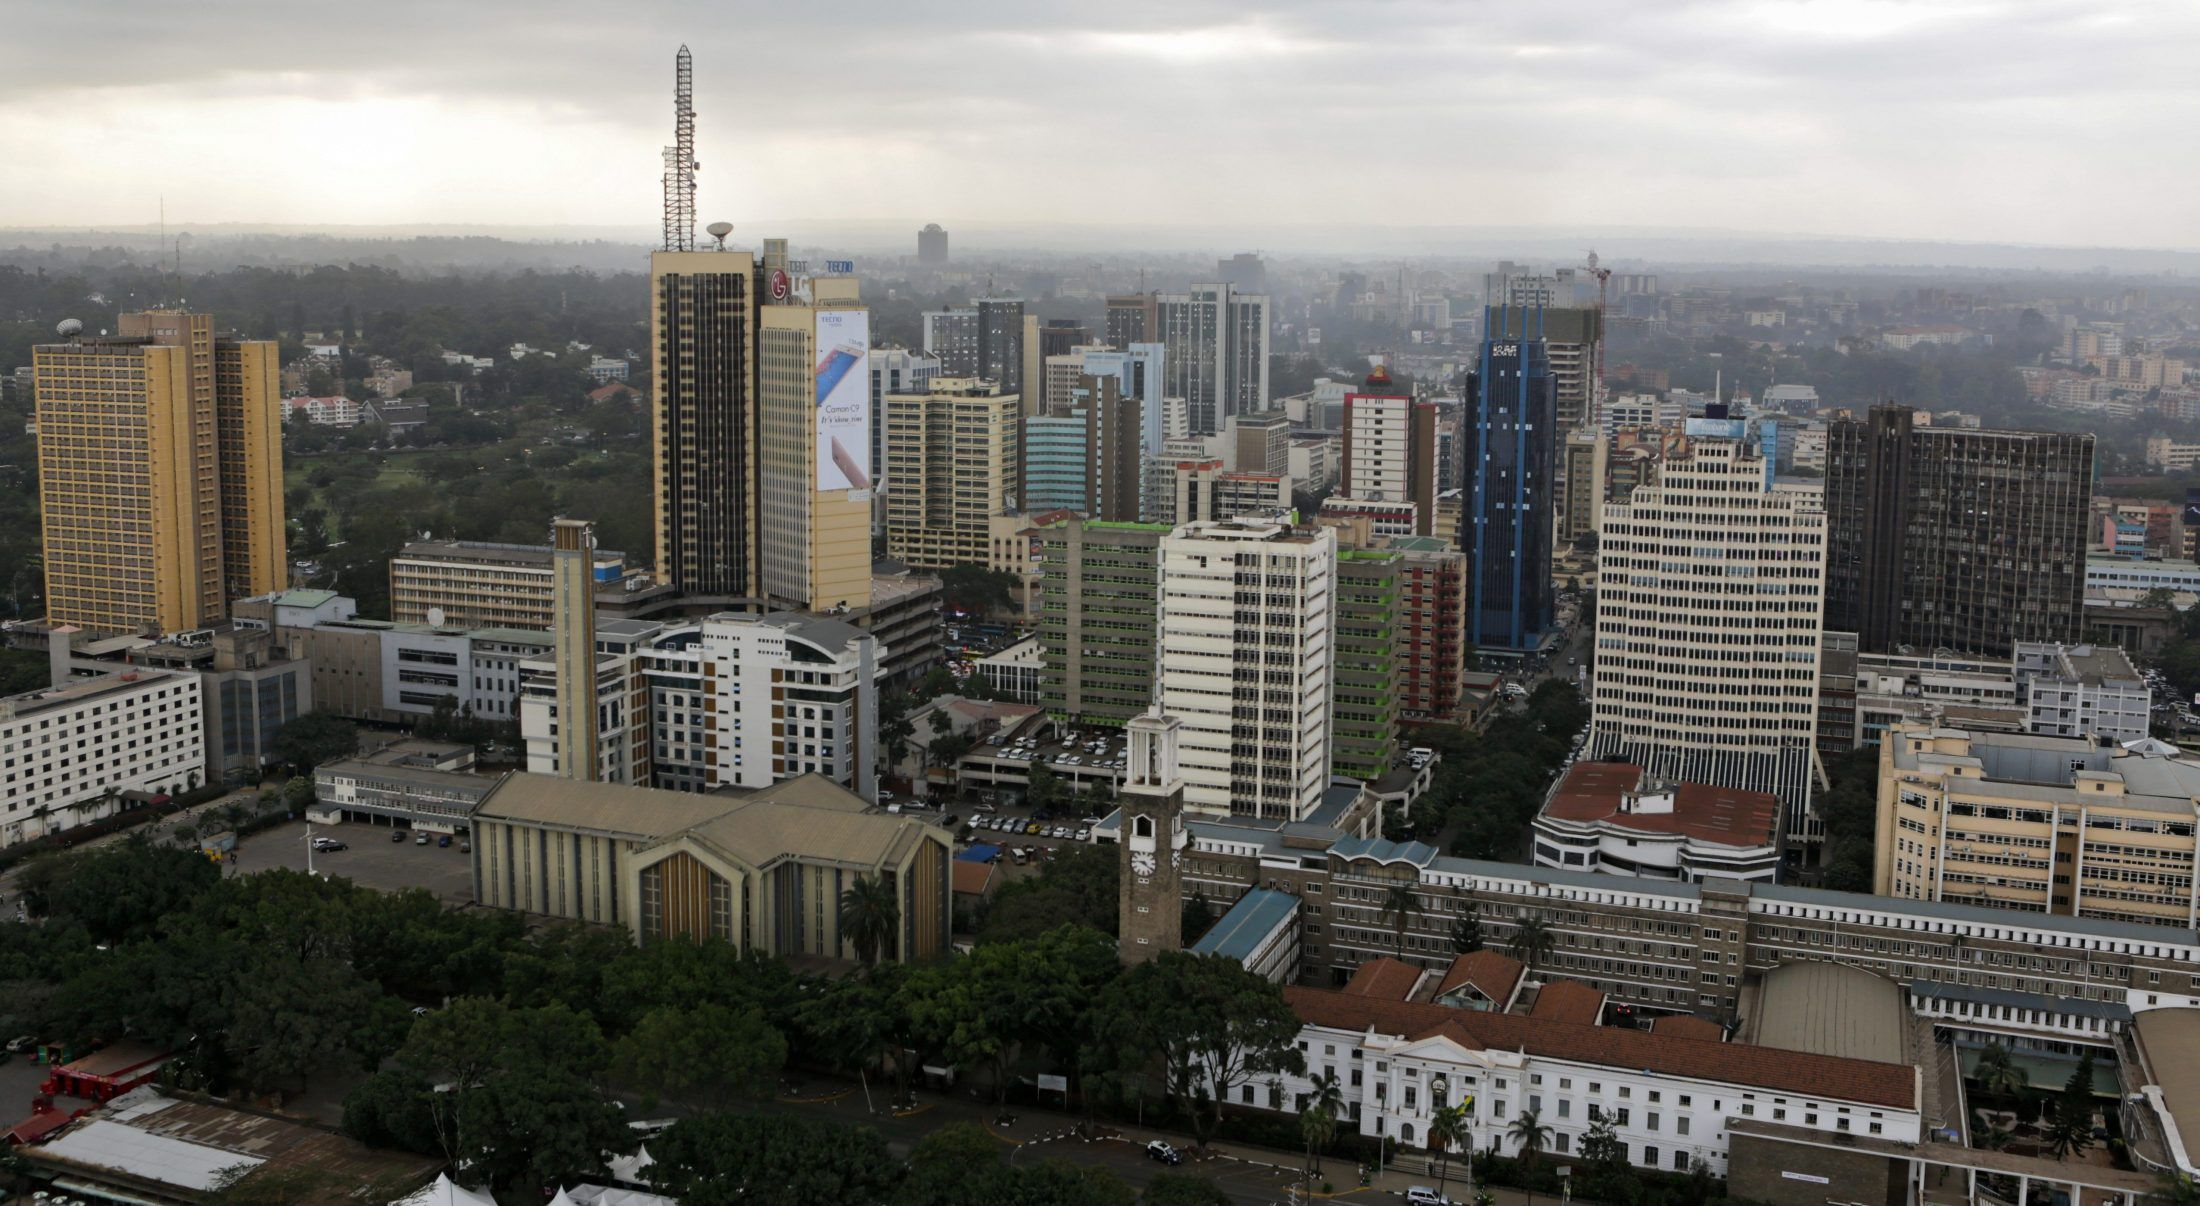 Kenya's government hopes skyscrapers like The Pinnacle, Africa's ...